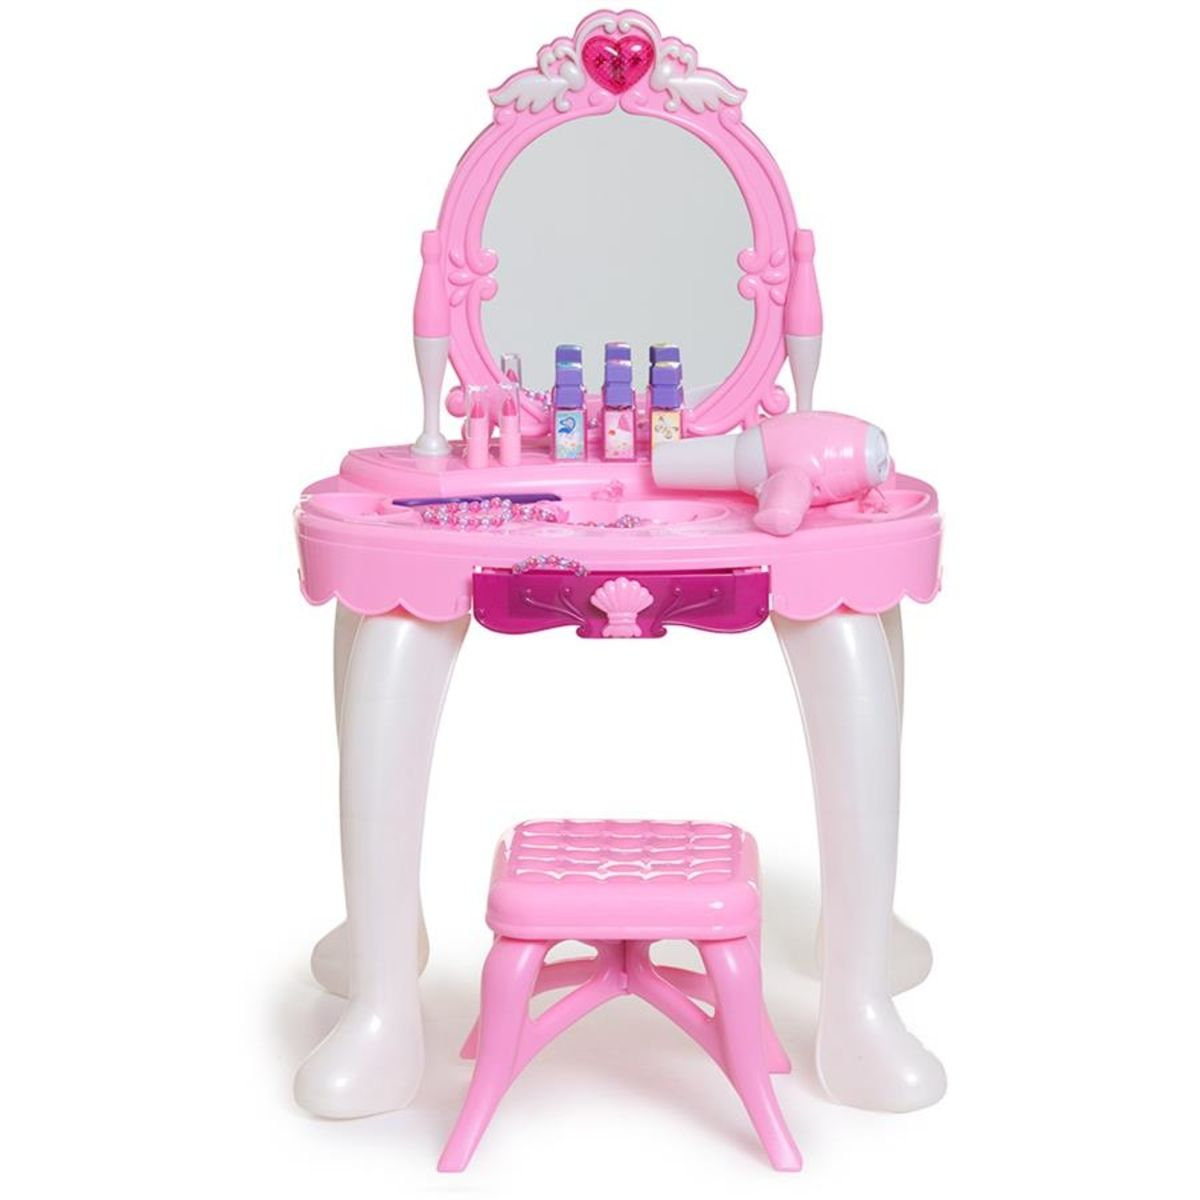 Full Function Vanity Set Role Play 0812x286 Kids Makeup Vanity Vanity Table Set Vanity Set